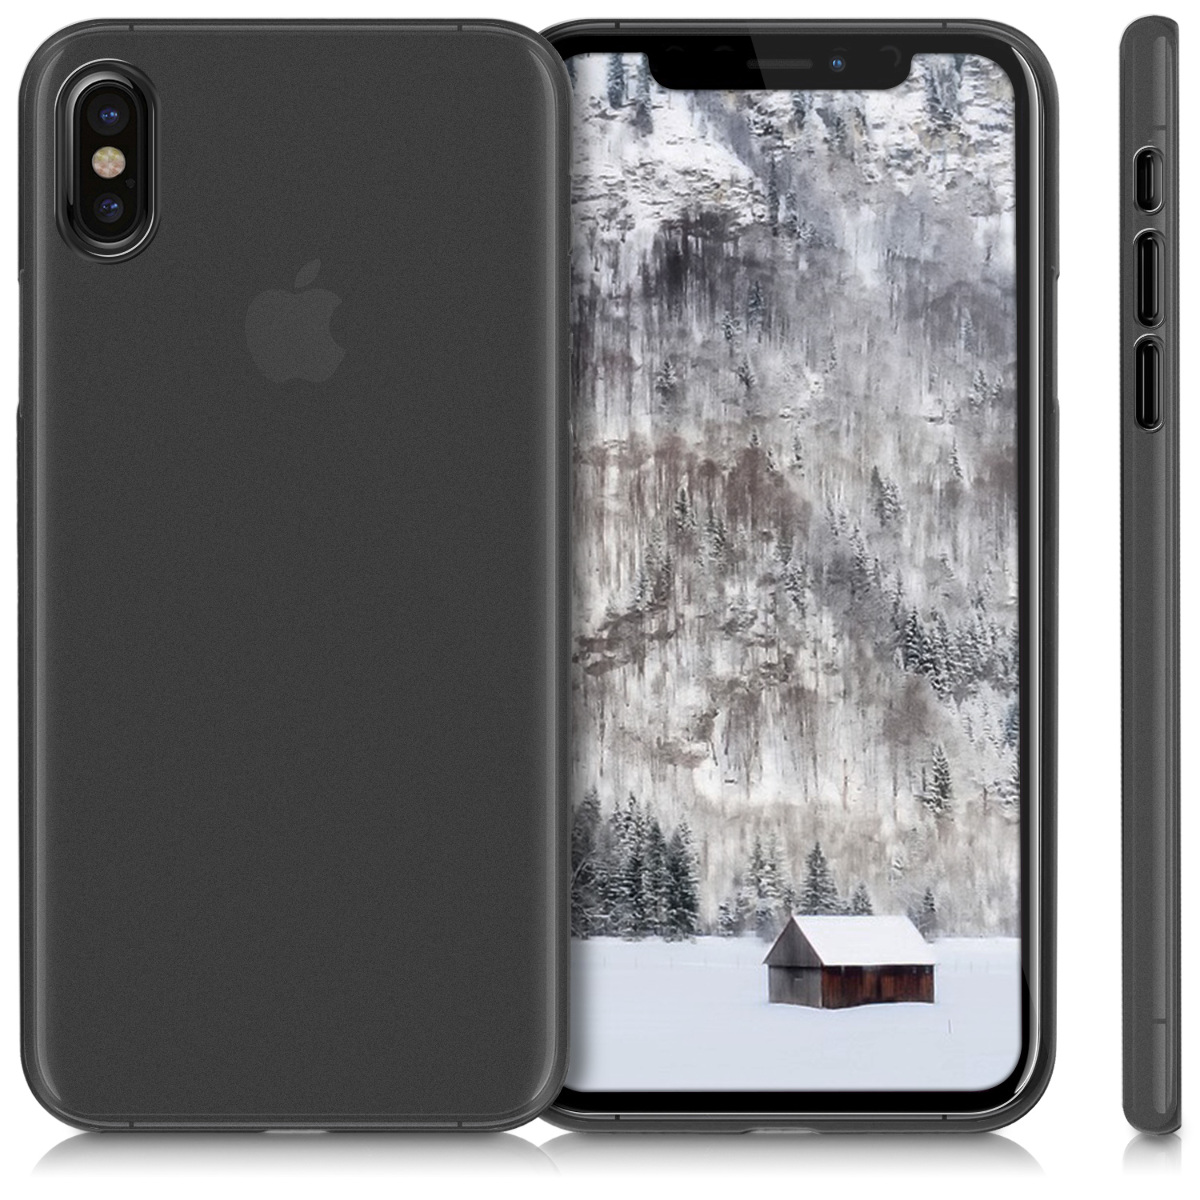 COQUE-ULTRA-FINE-POUR-APPLE-IPHONE-X-HOUSSE-PROTECTION-ARRIERE